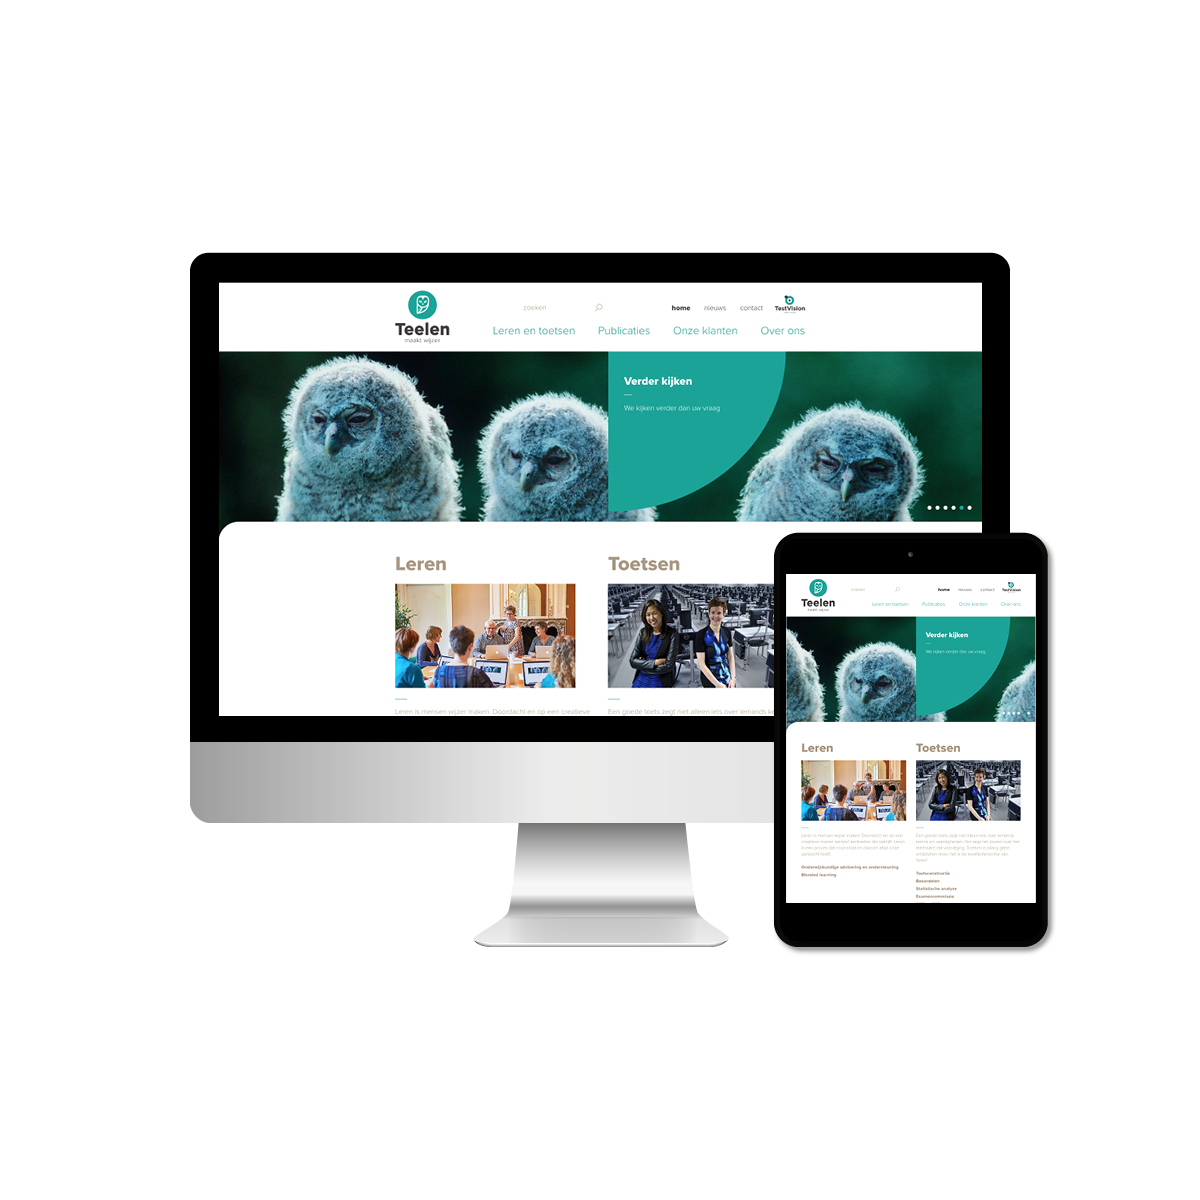 Teelen | Webdesign | Creative Digital Agency Puntkomma Nijmegen